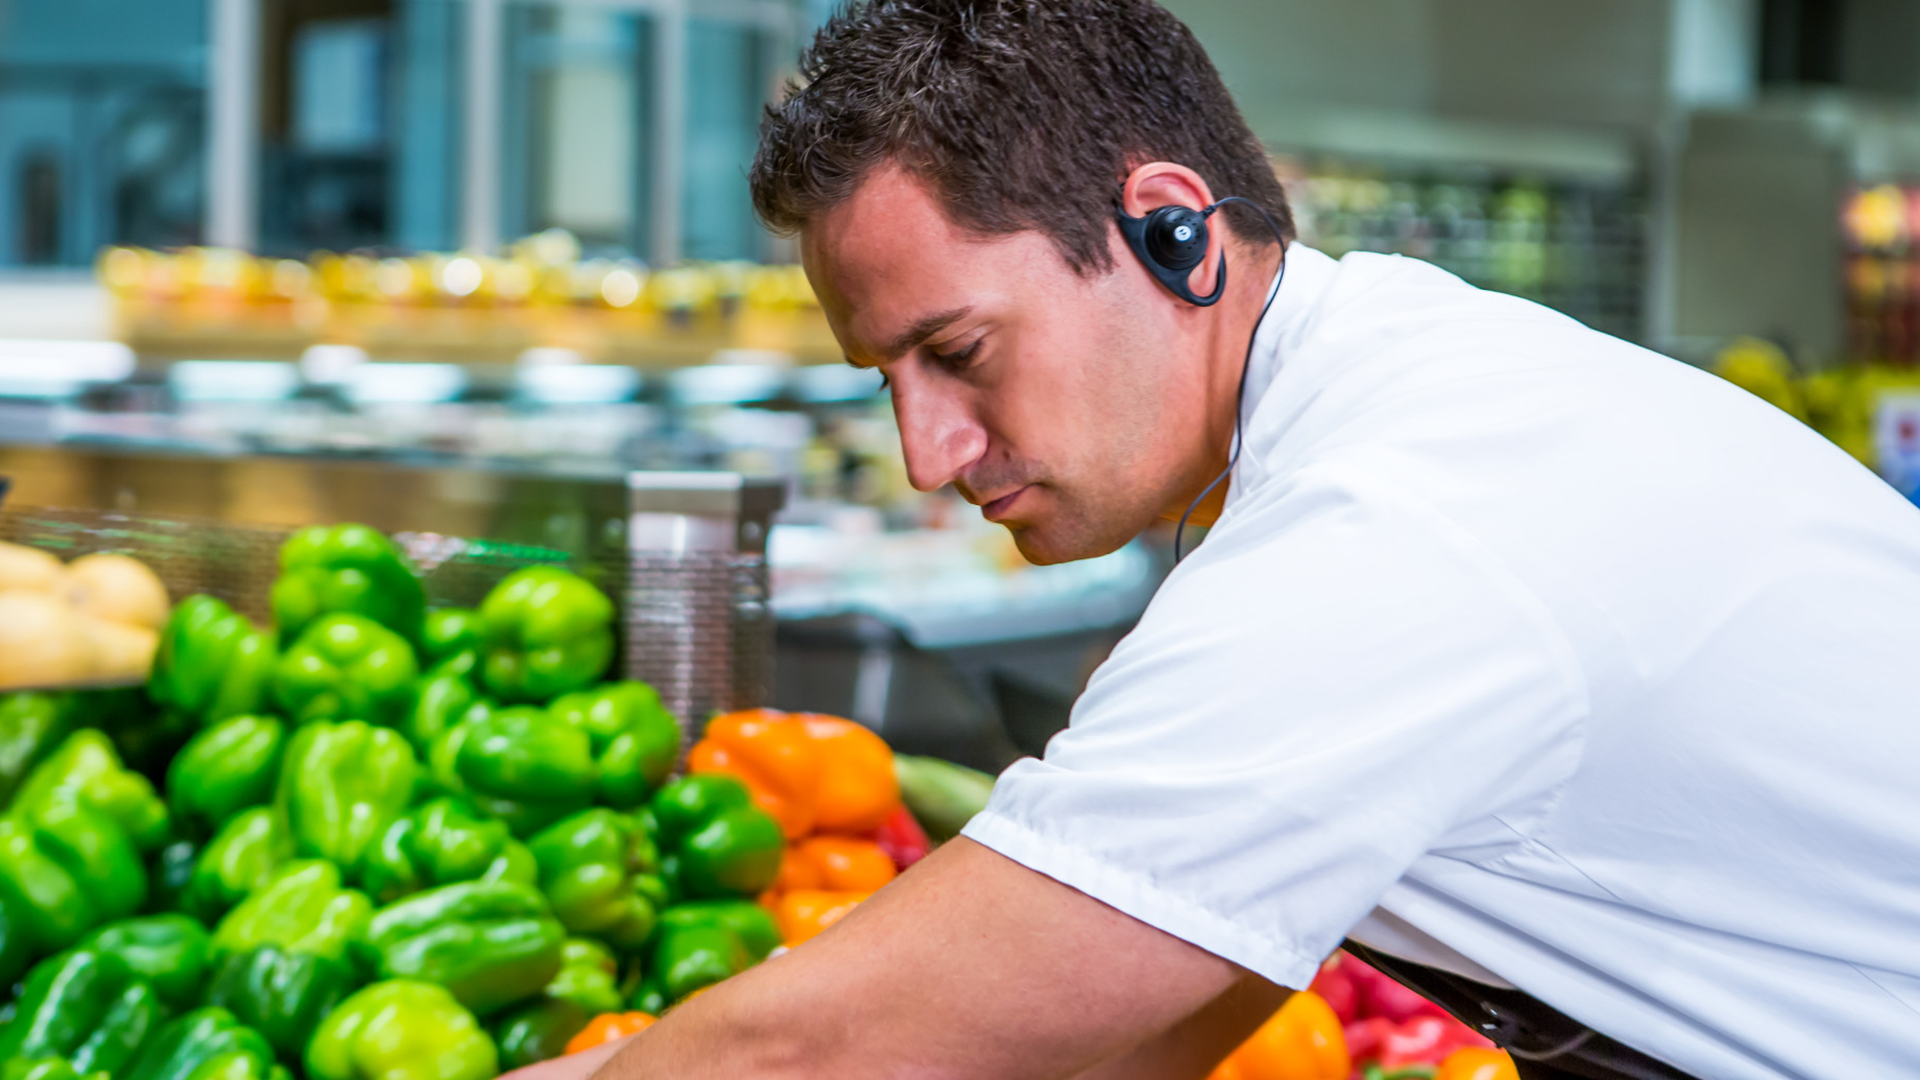 Retail: Two-way radios for supermarkets